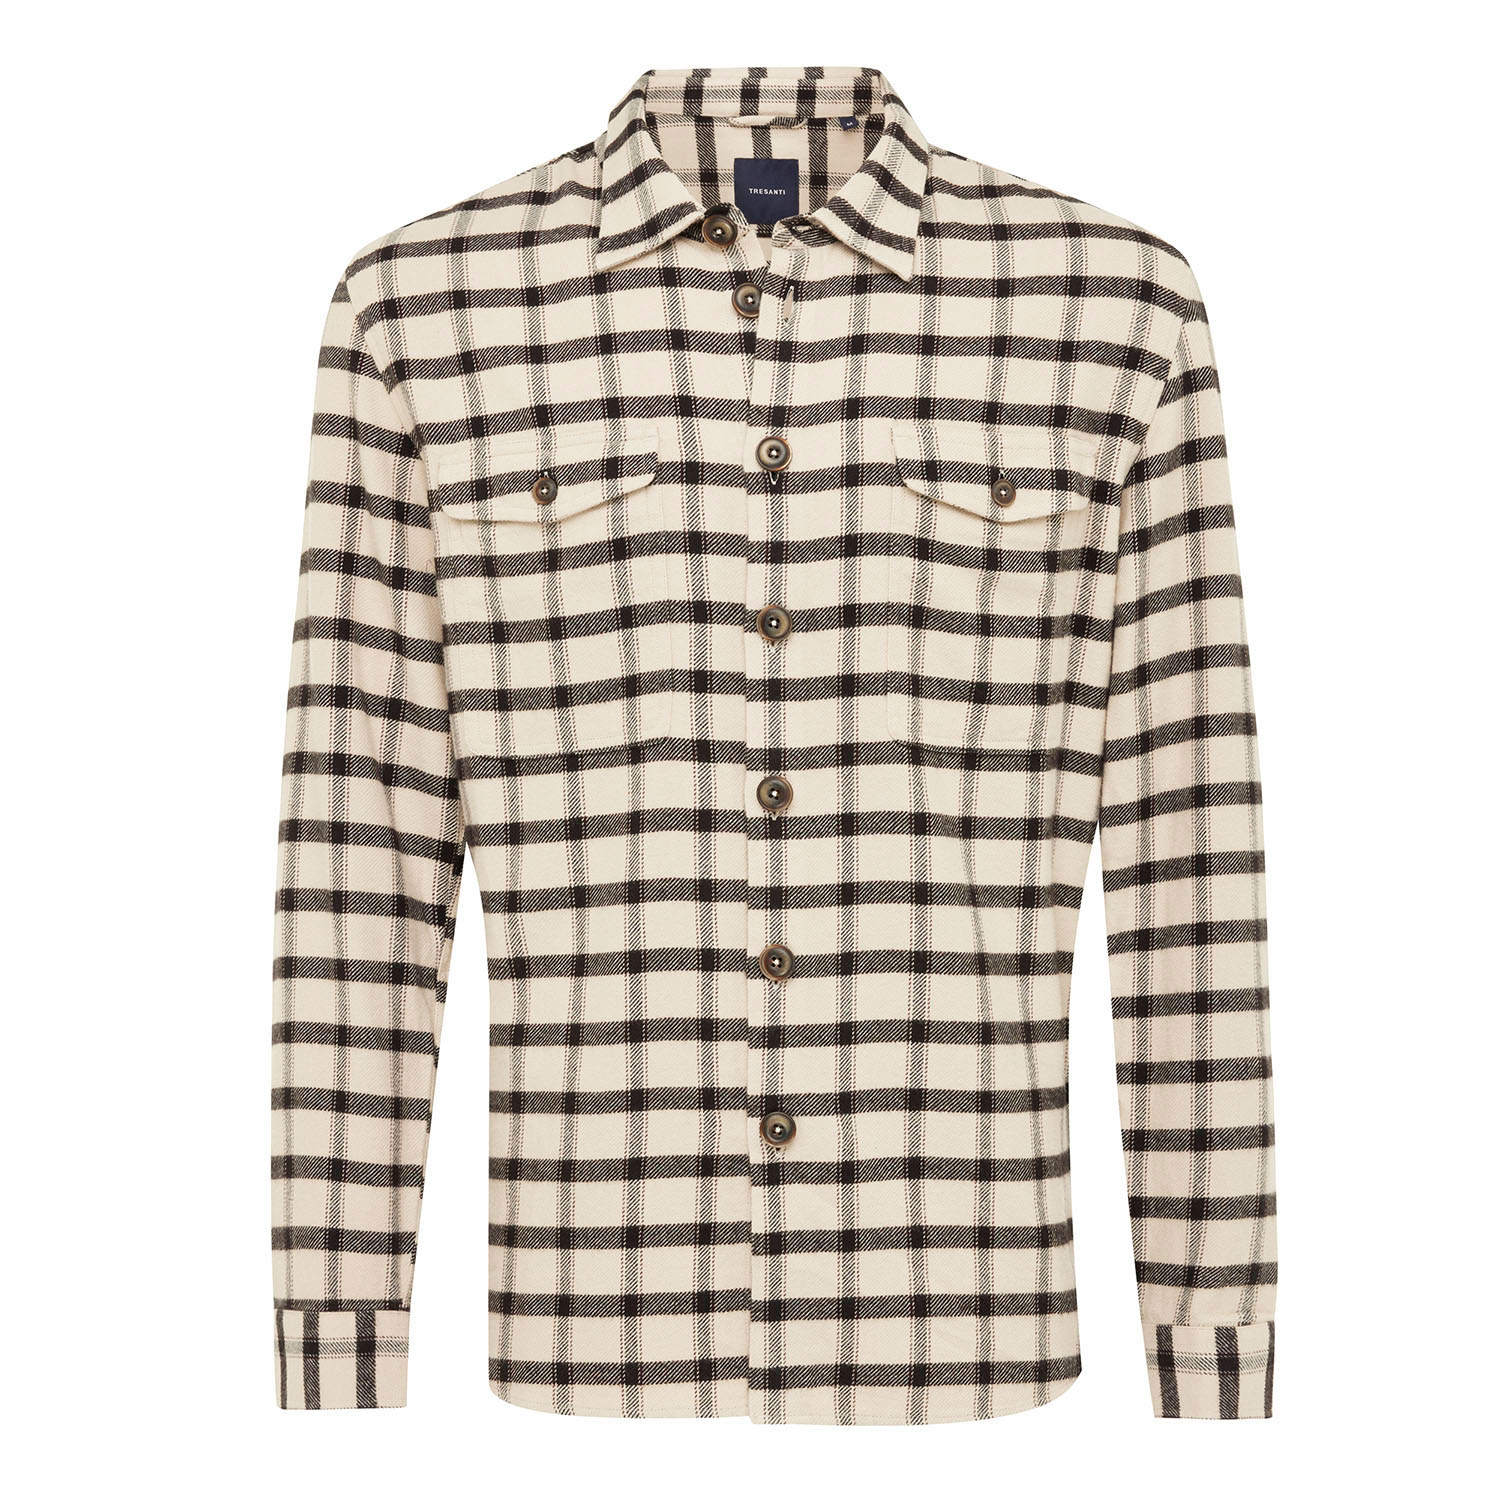 EMMETON | Shirt with button closure, ivory with black check